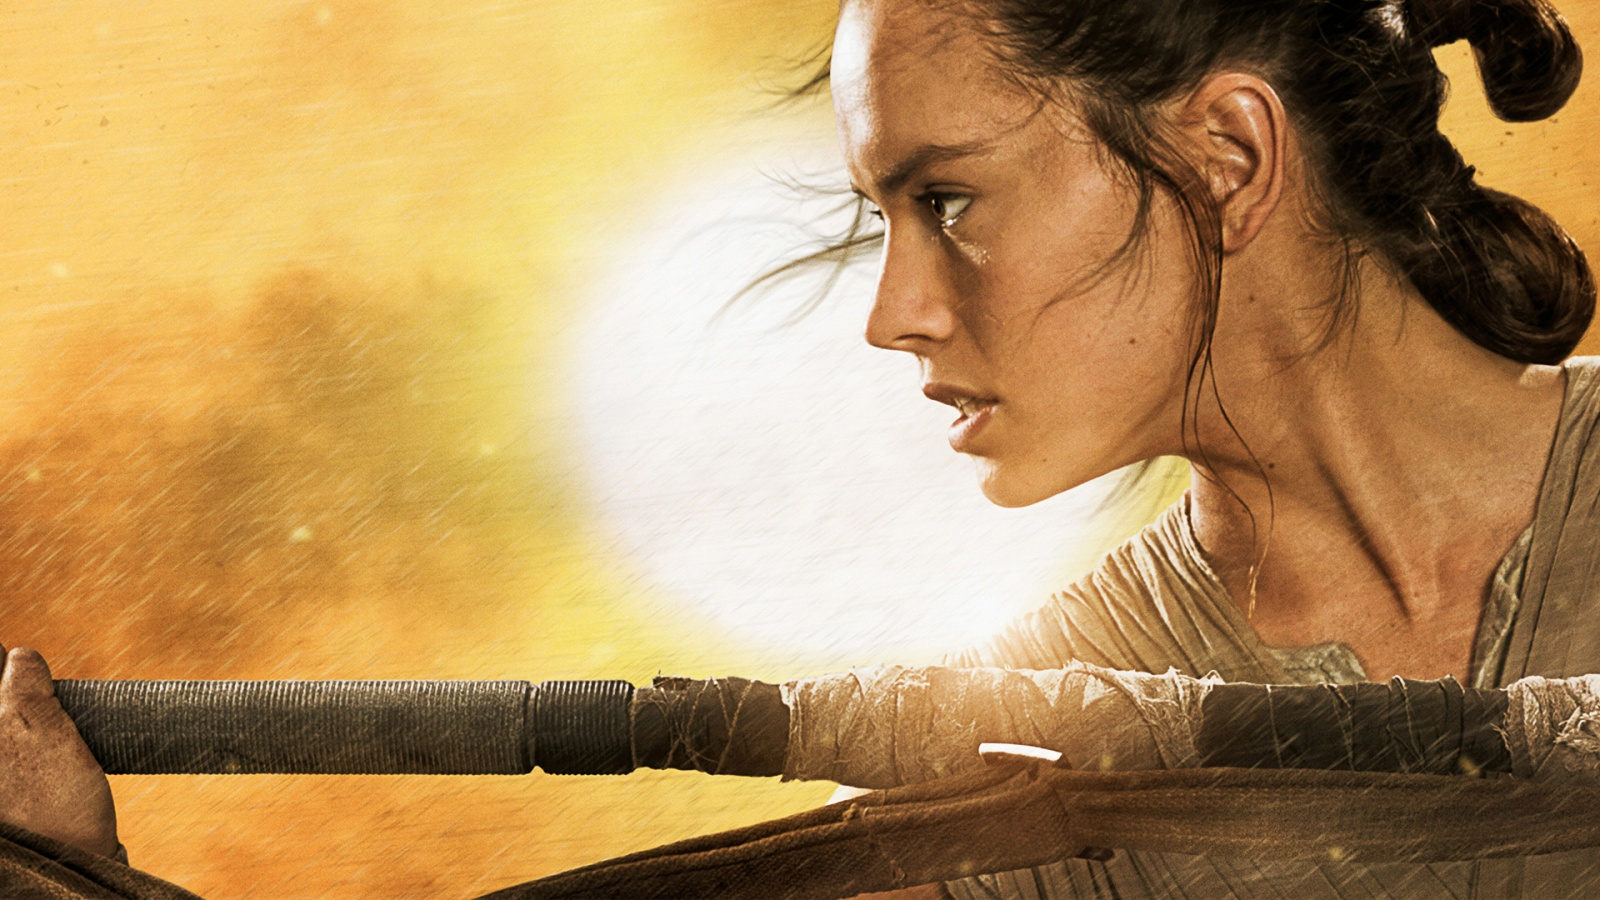 Star Wars The Force Awakens Rey Wallpapers HD Wallpapers 1600x900